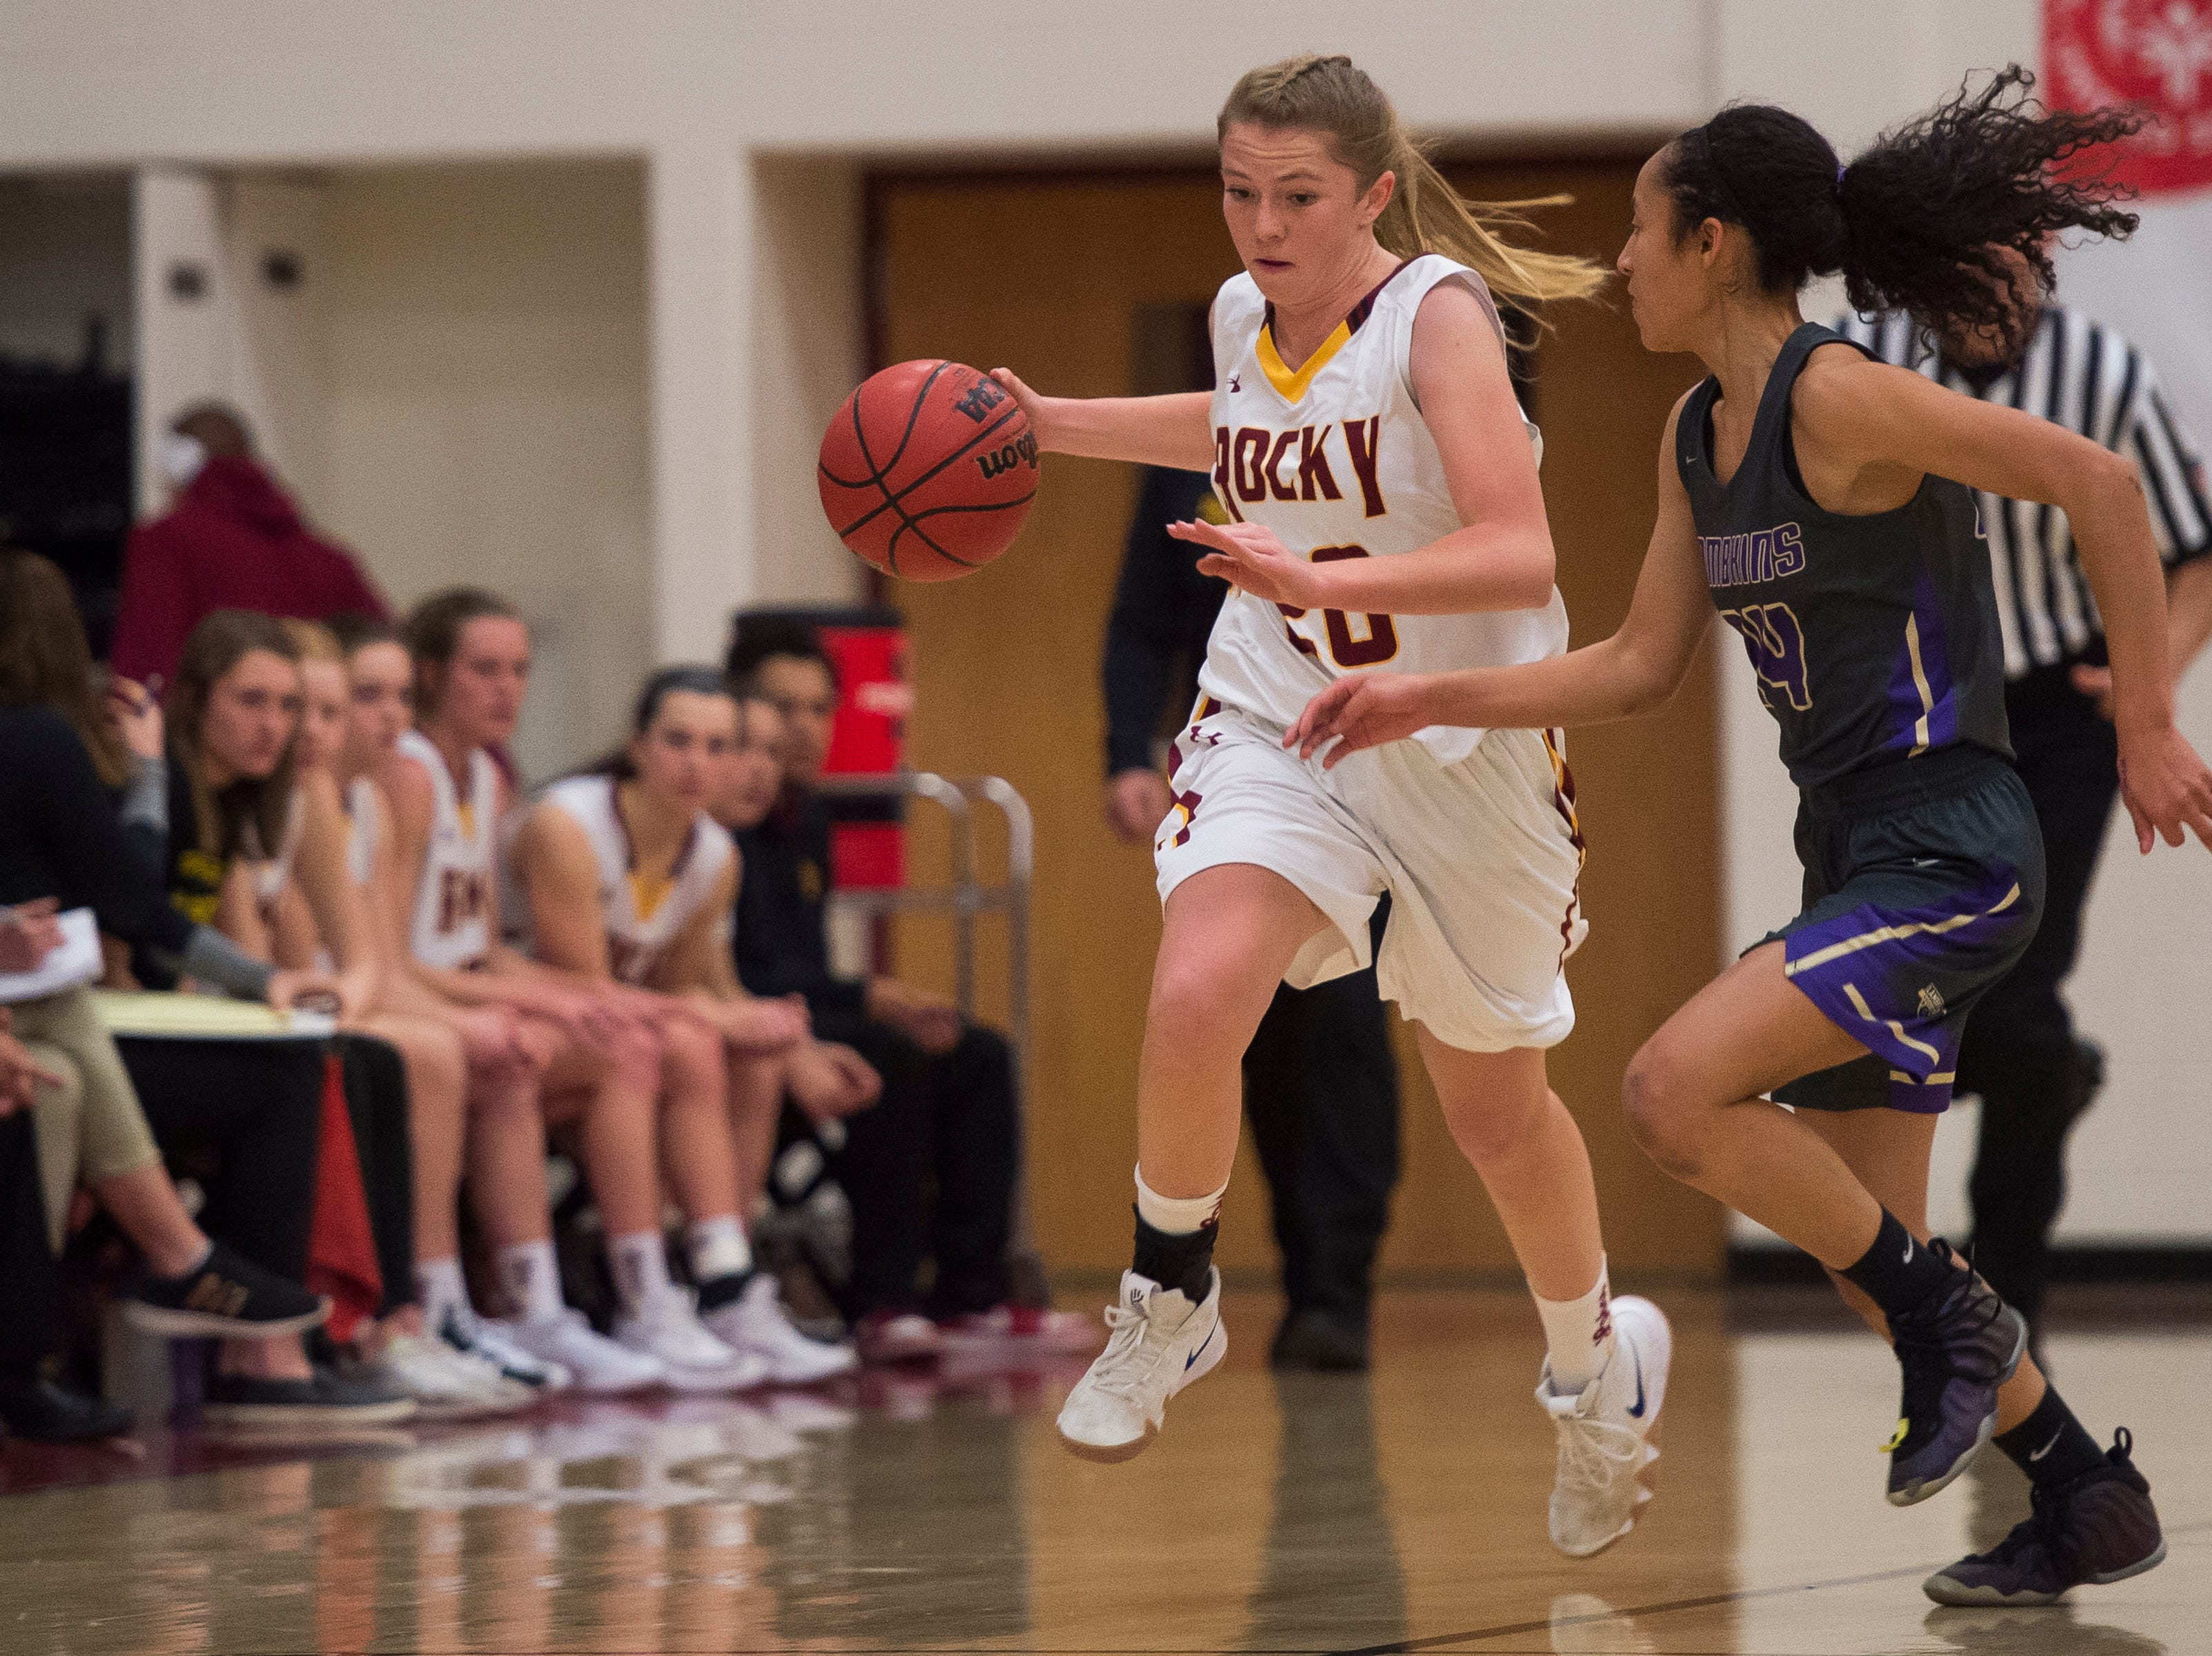 Rocky Mountain High School senior Madison Hand (20) drives downcourt against Fort Collins High School Isabel Layne (24) on Friday, Jan. 18, 2019, at Rocky Mountain High School in Fort Collins, Colo.